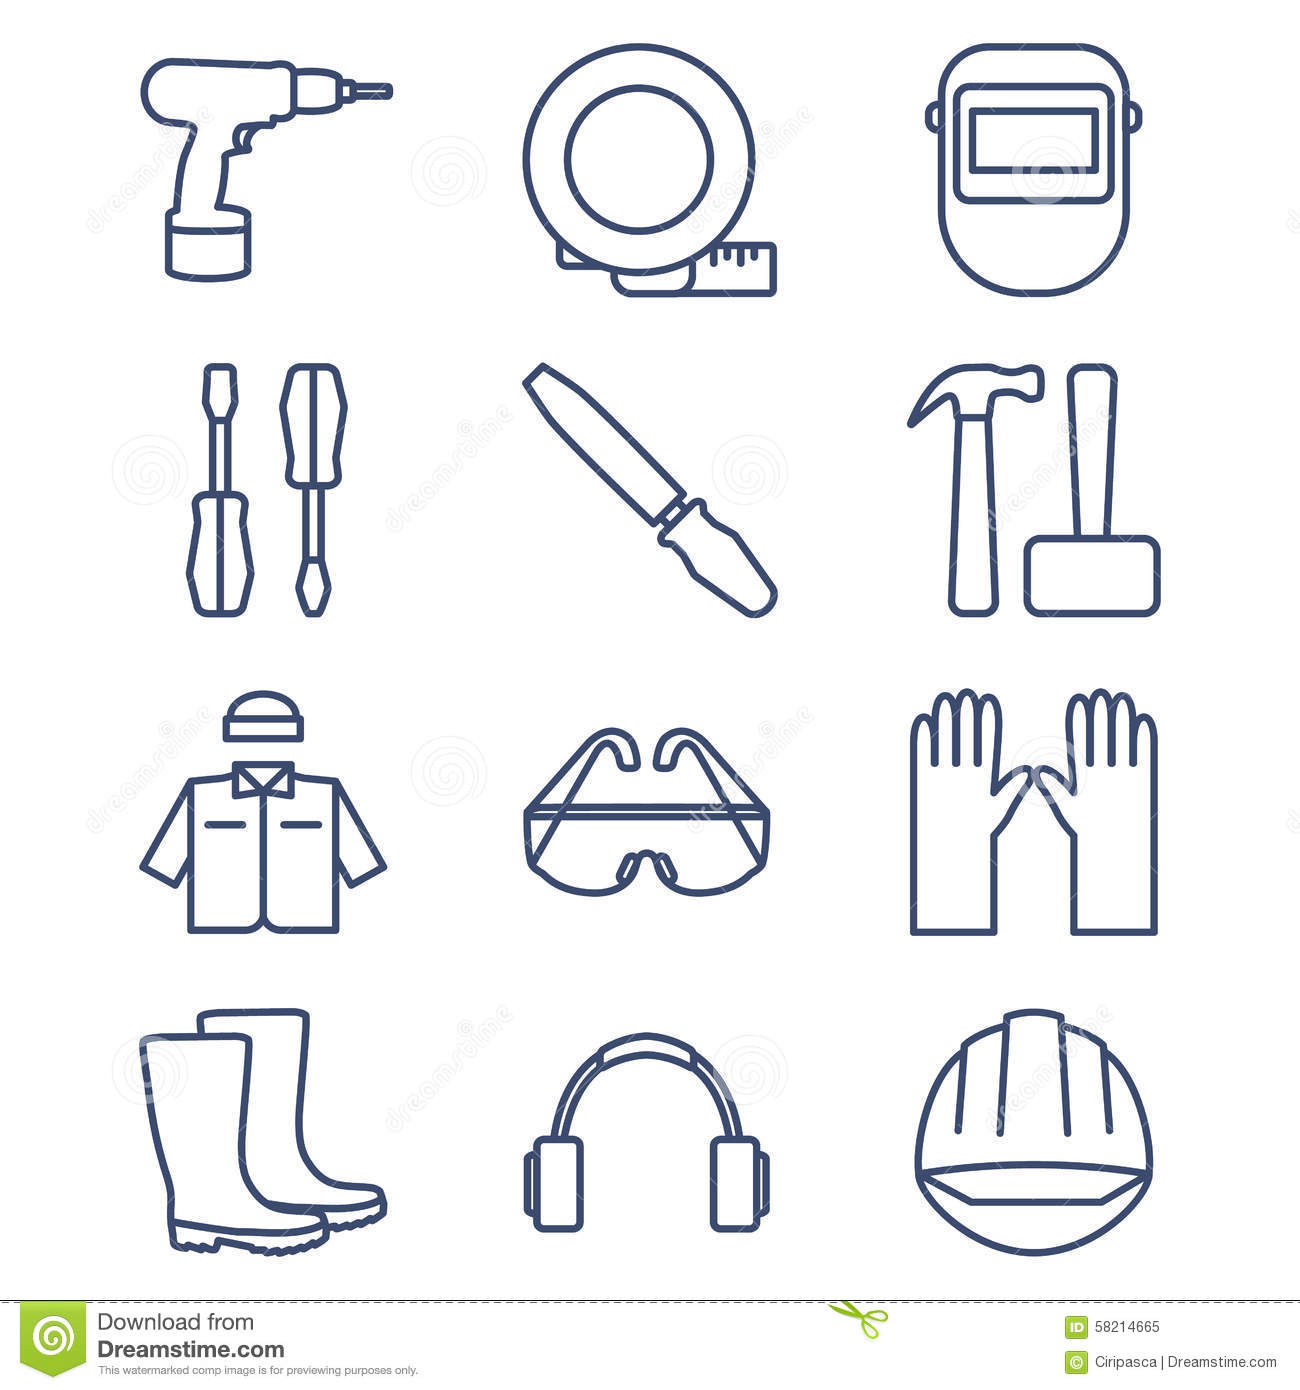 Set of line icons for DIY, tools and work clothes